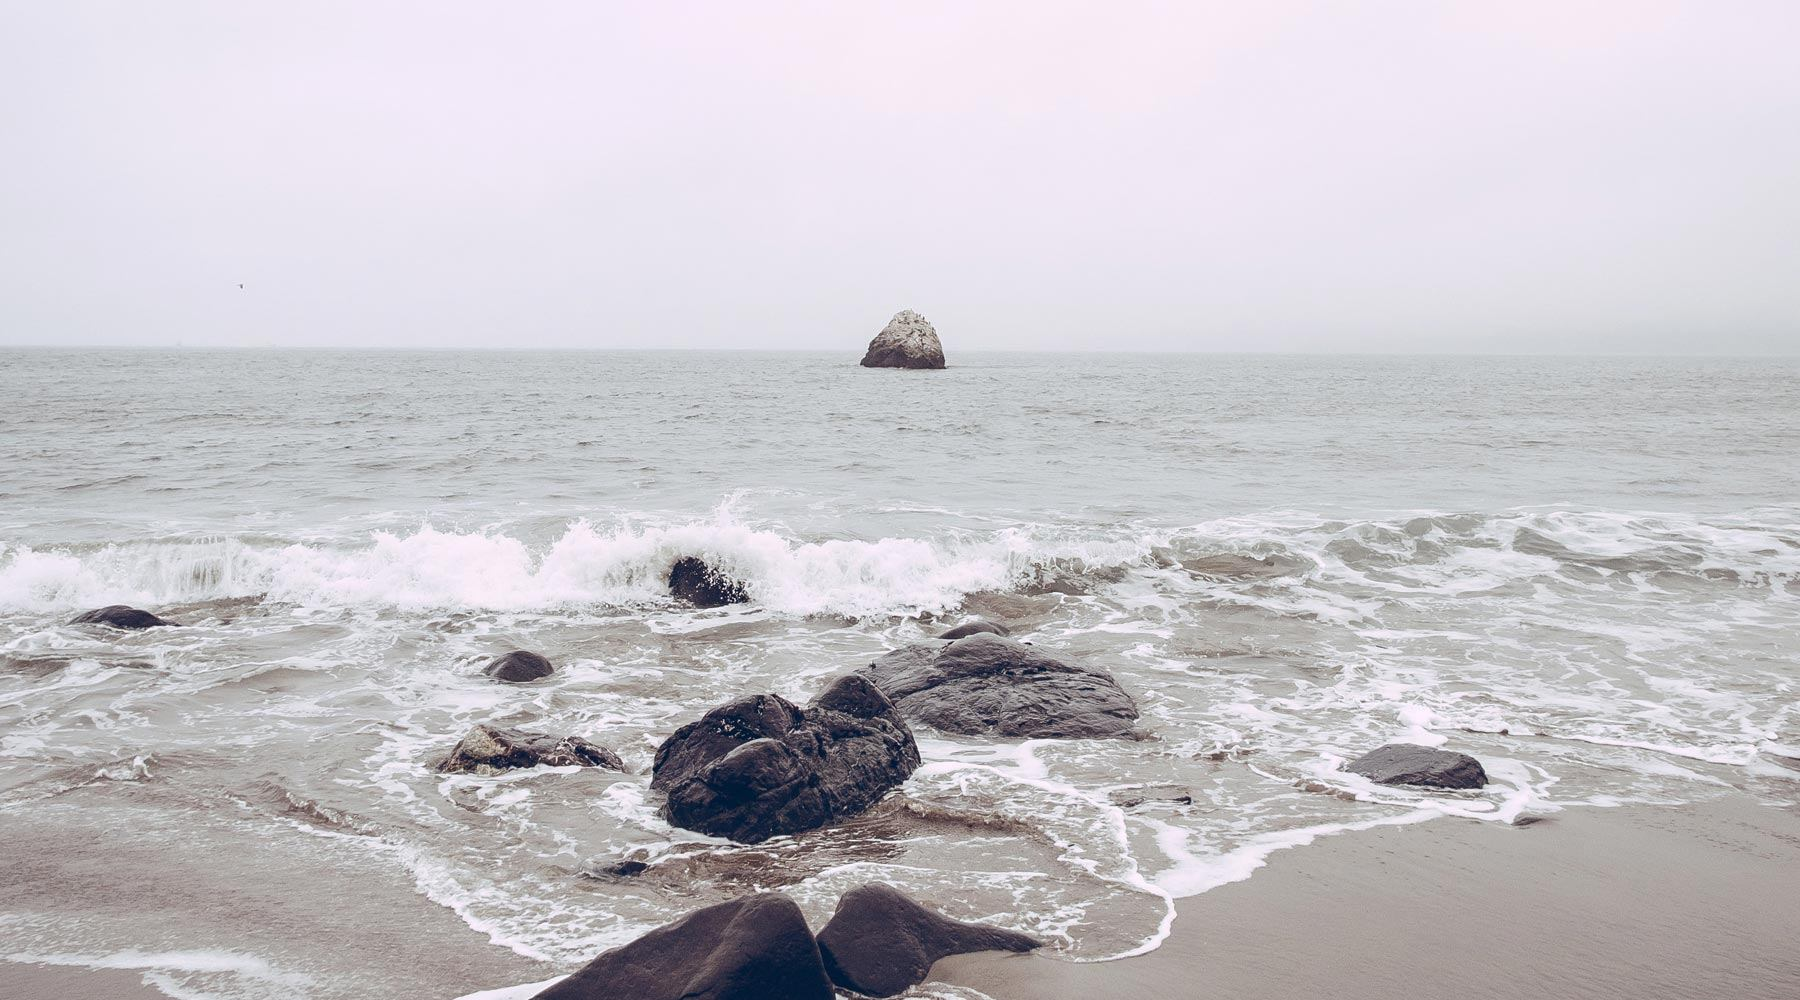 Waves hitting boulders and sand on shoreline on an overcast day